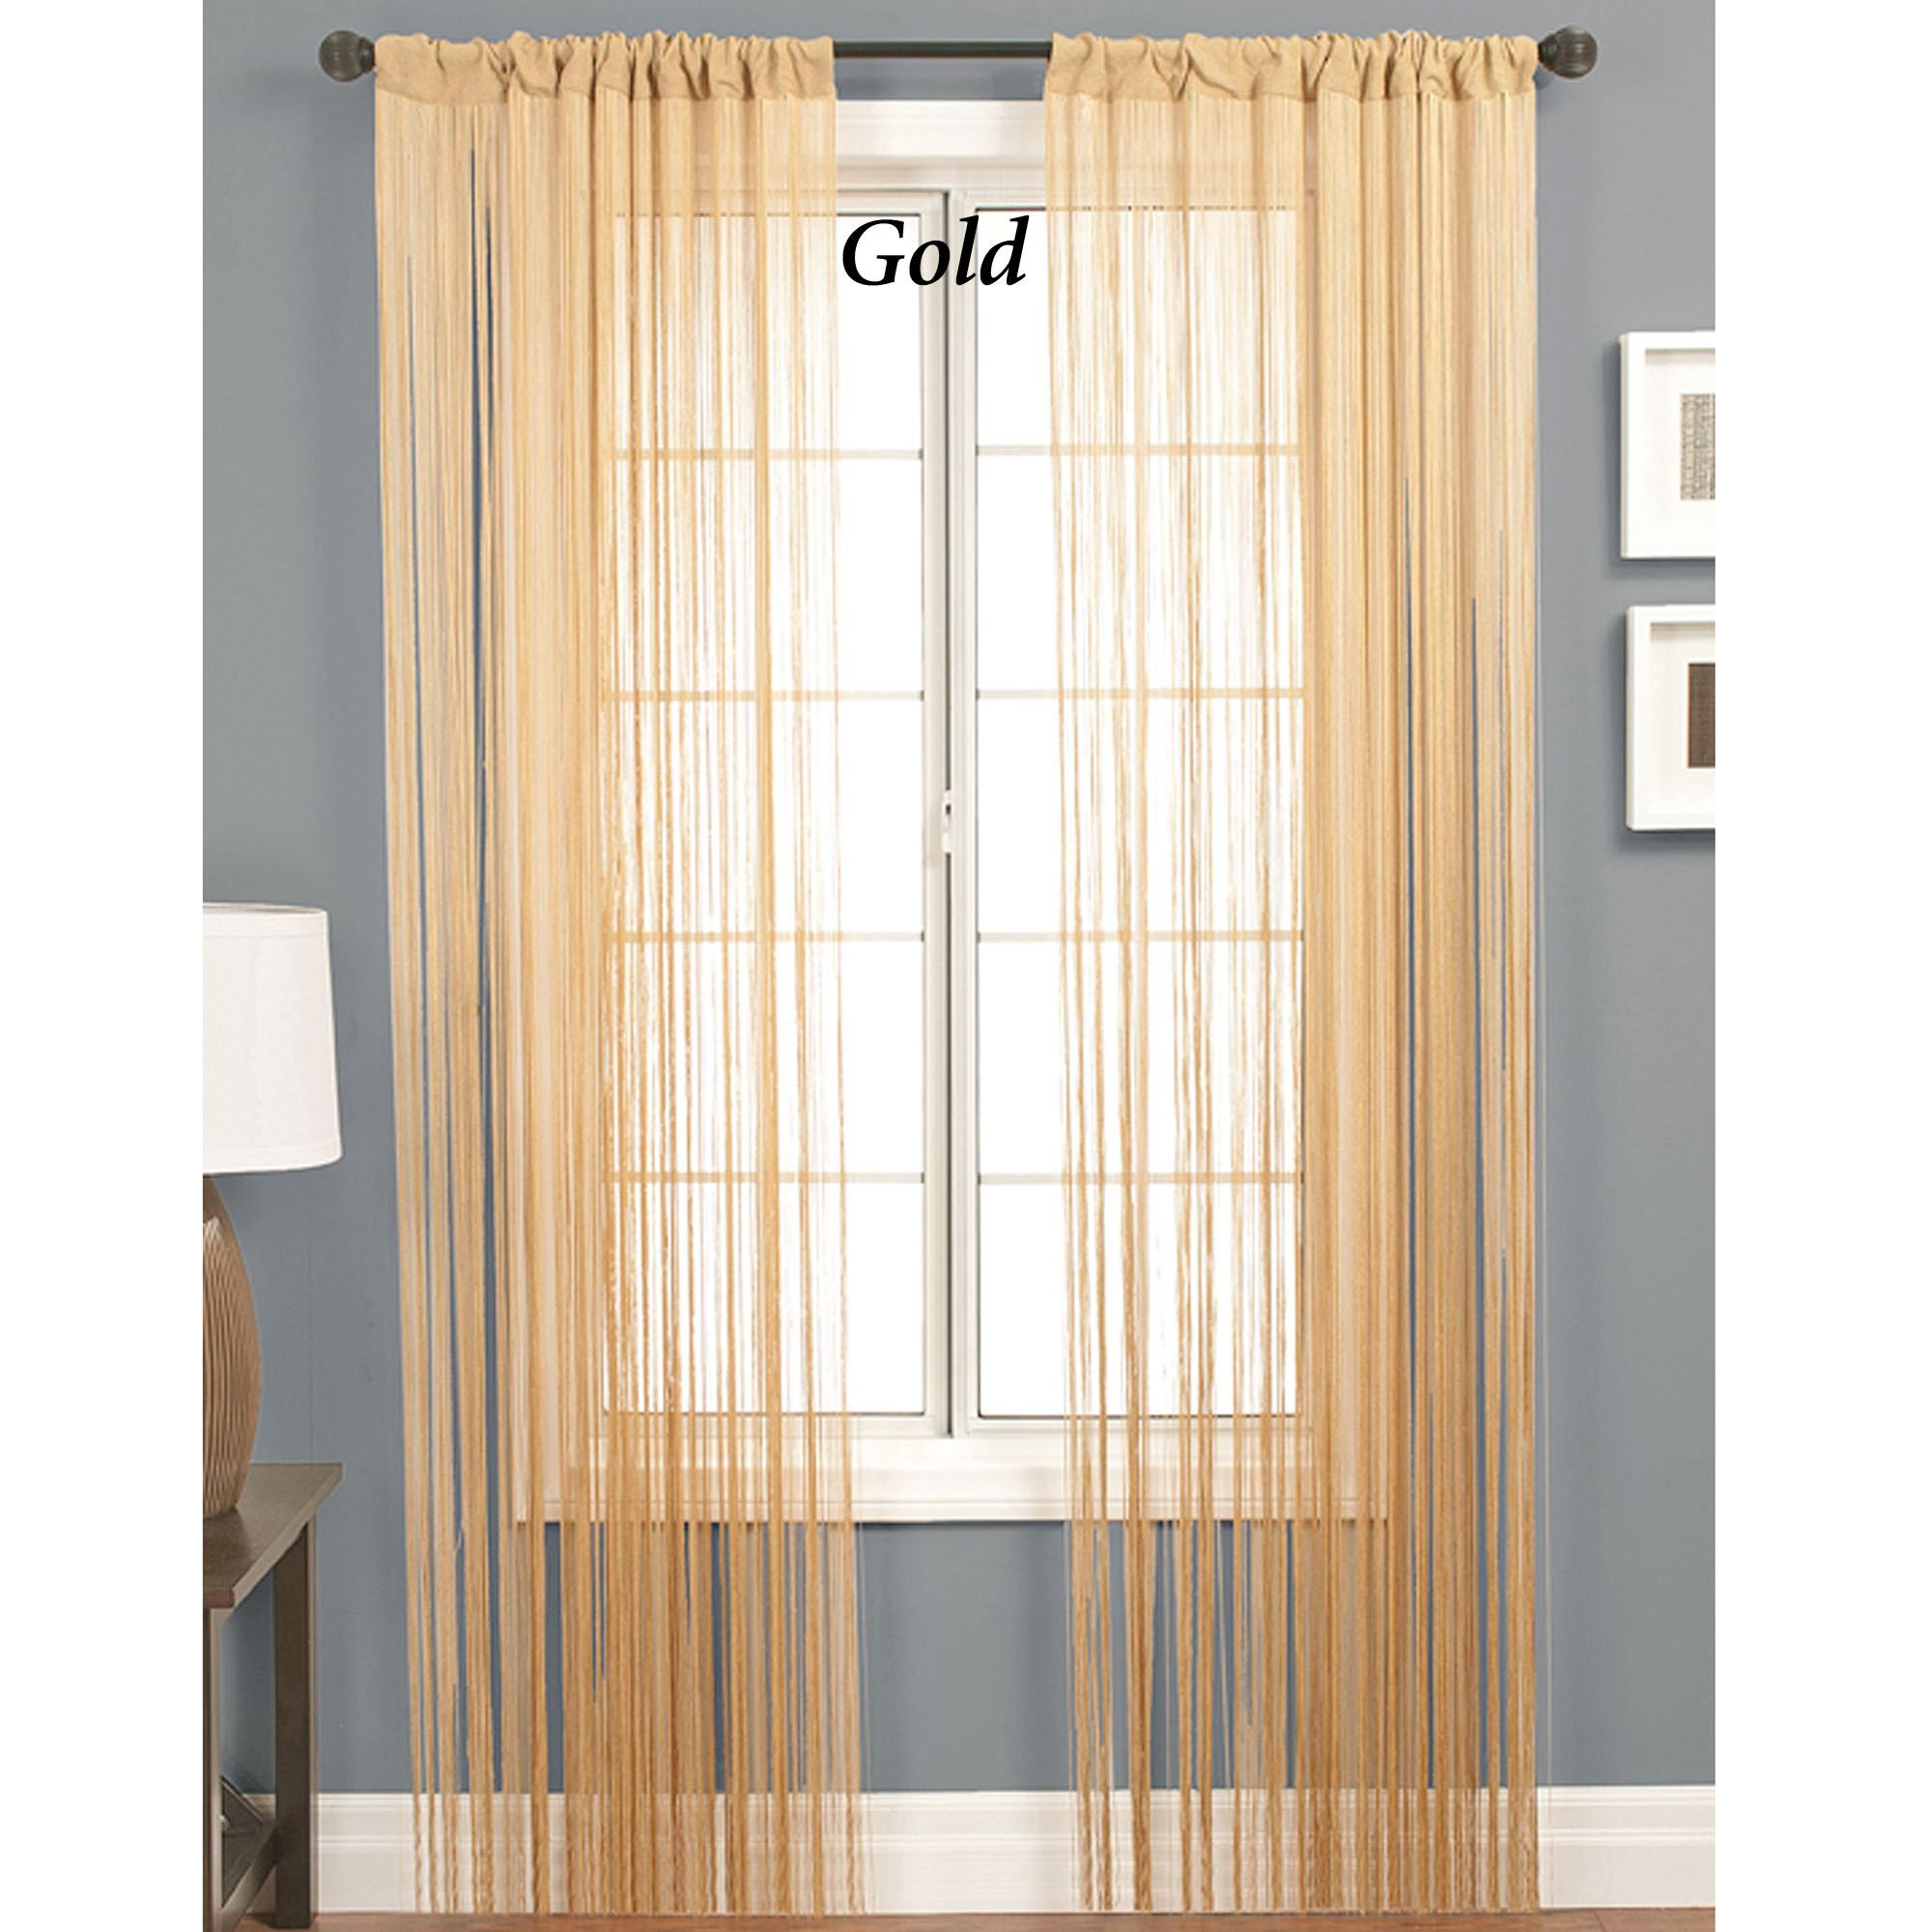 curtains rod exotic drapes pin pocket caldwell panels blackout pinterest and curtain